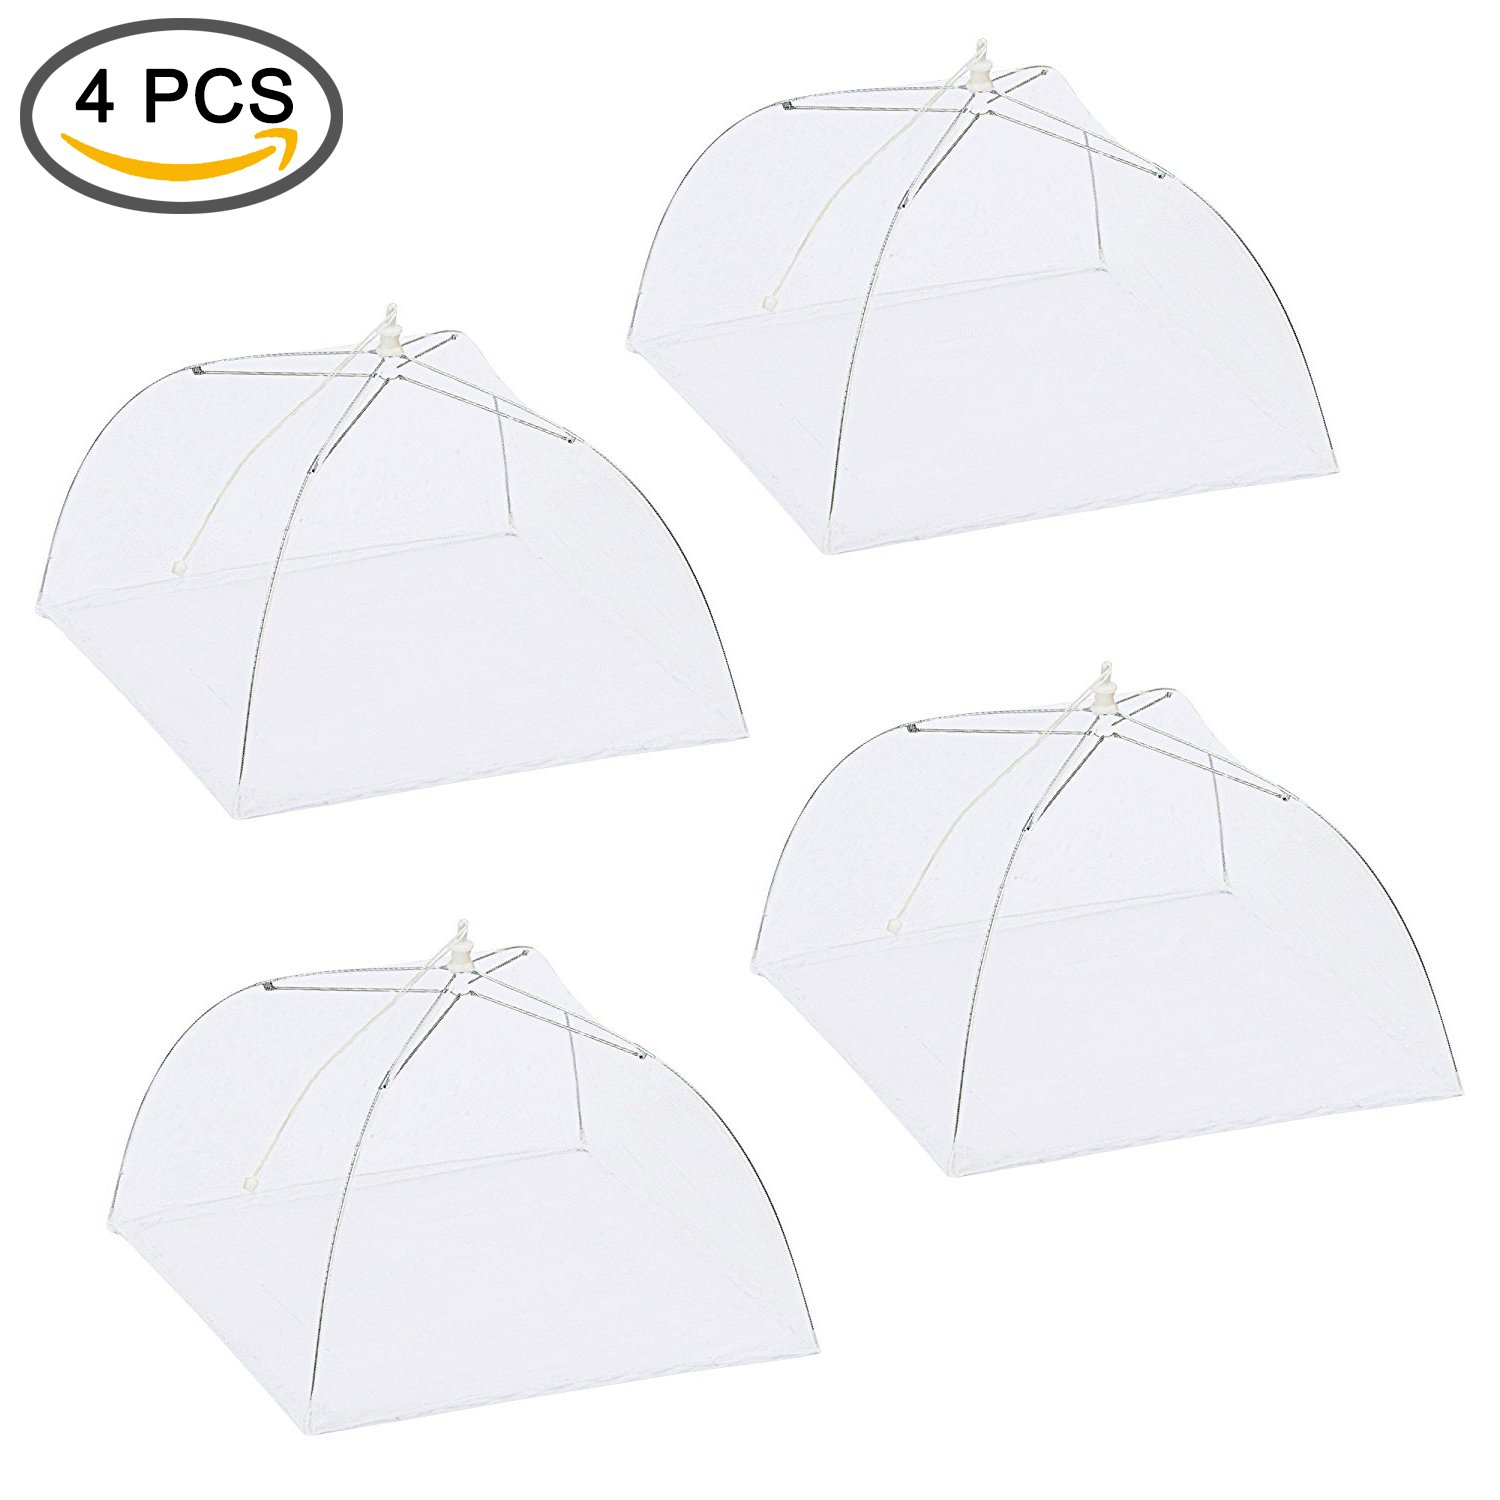 4 Pcs Mesh Screen Food Cover Tents Pop-Up ShineMe 17inches Collapsible Home/Outdoor Food Cover/Protector Keep Out Flies, Bugs, Mosquitoes Picnics, BBQ